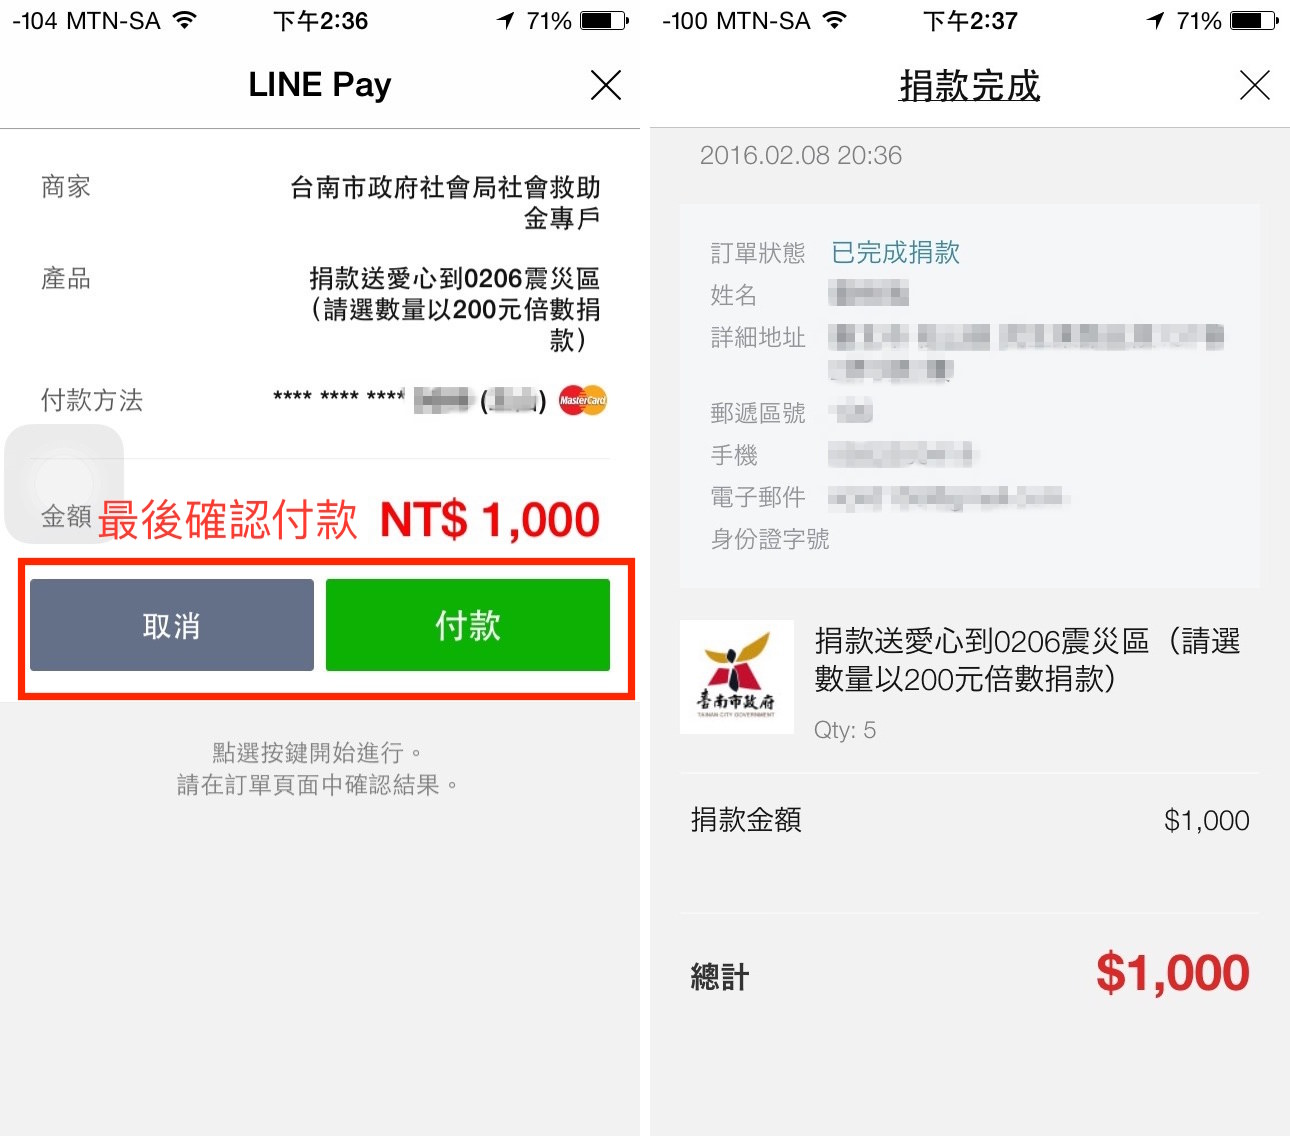 line pay 04